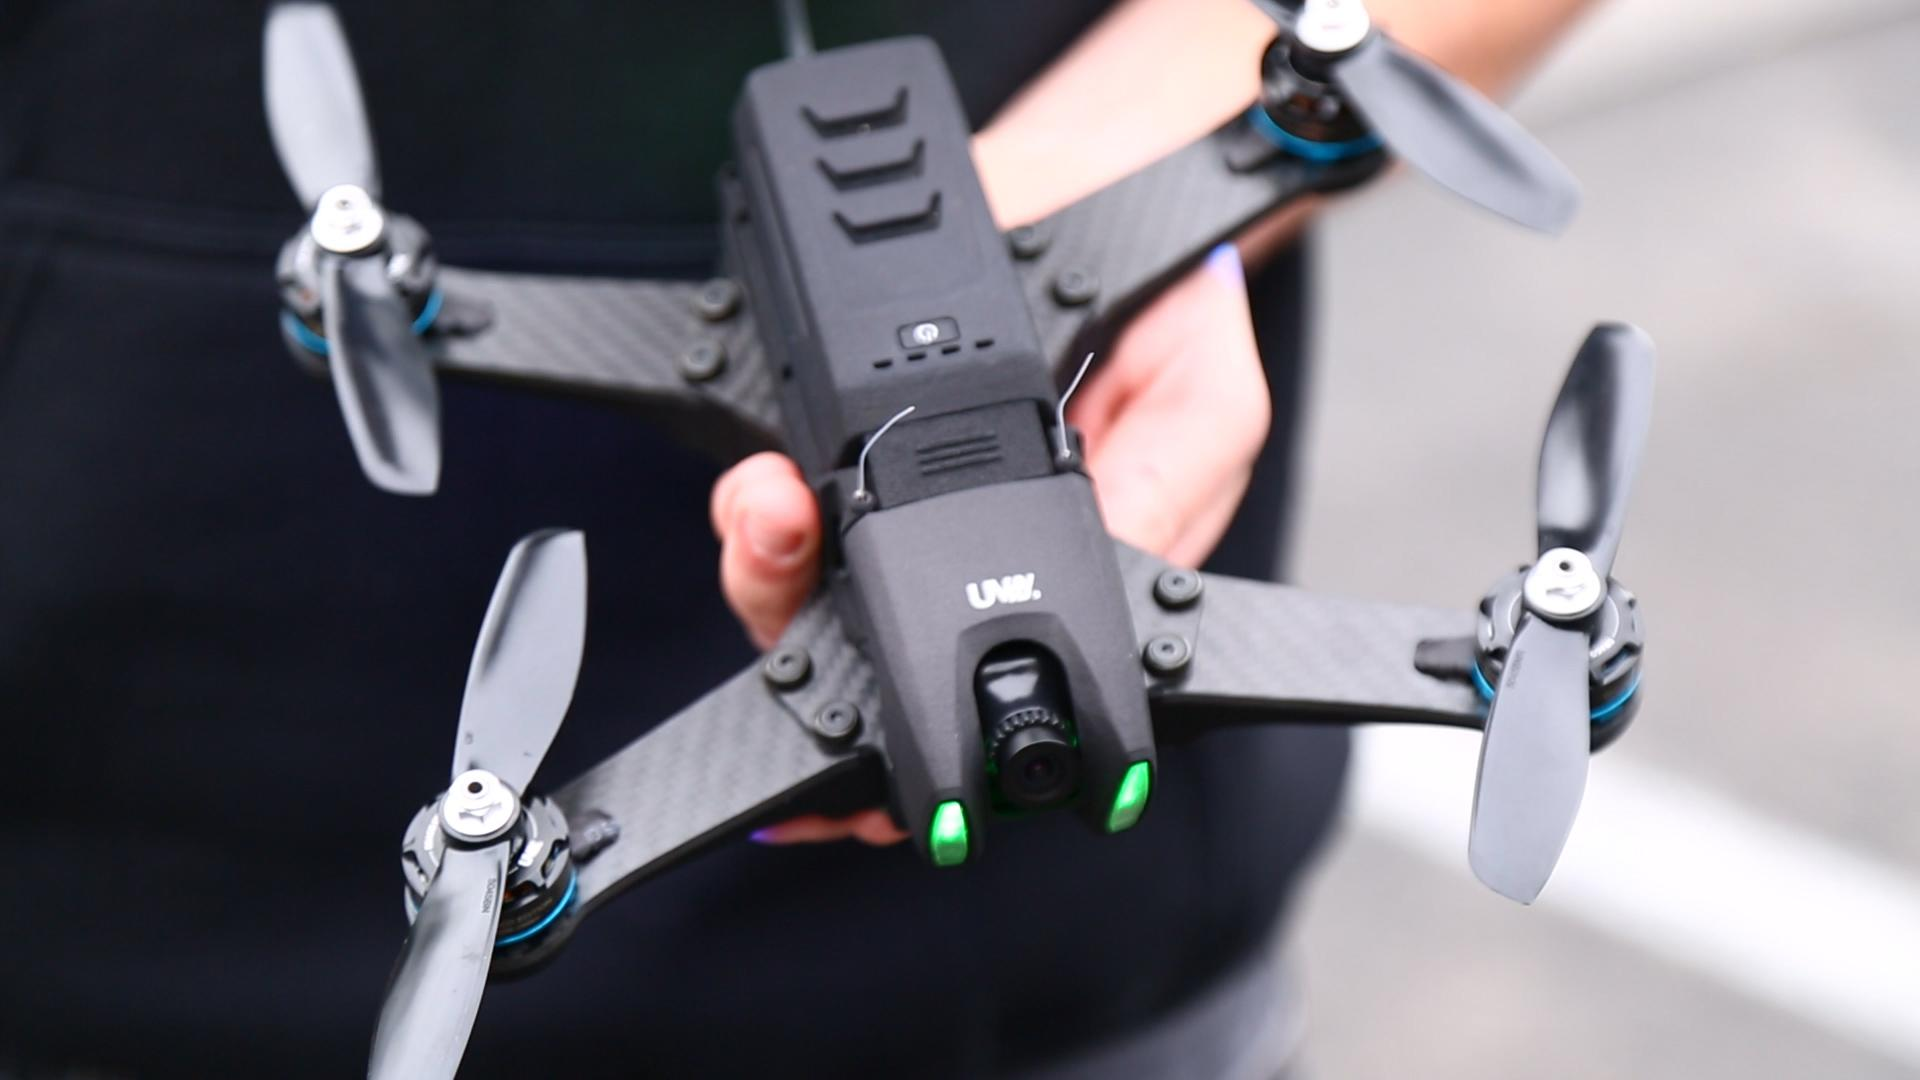 UVify's high speed racing drone